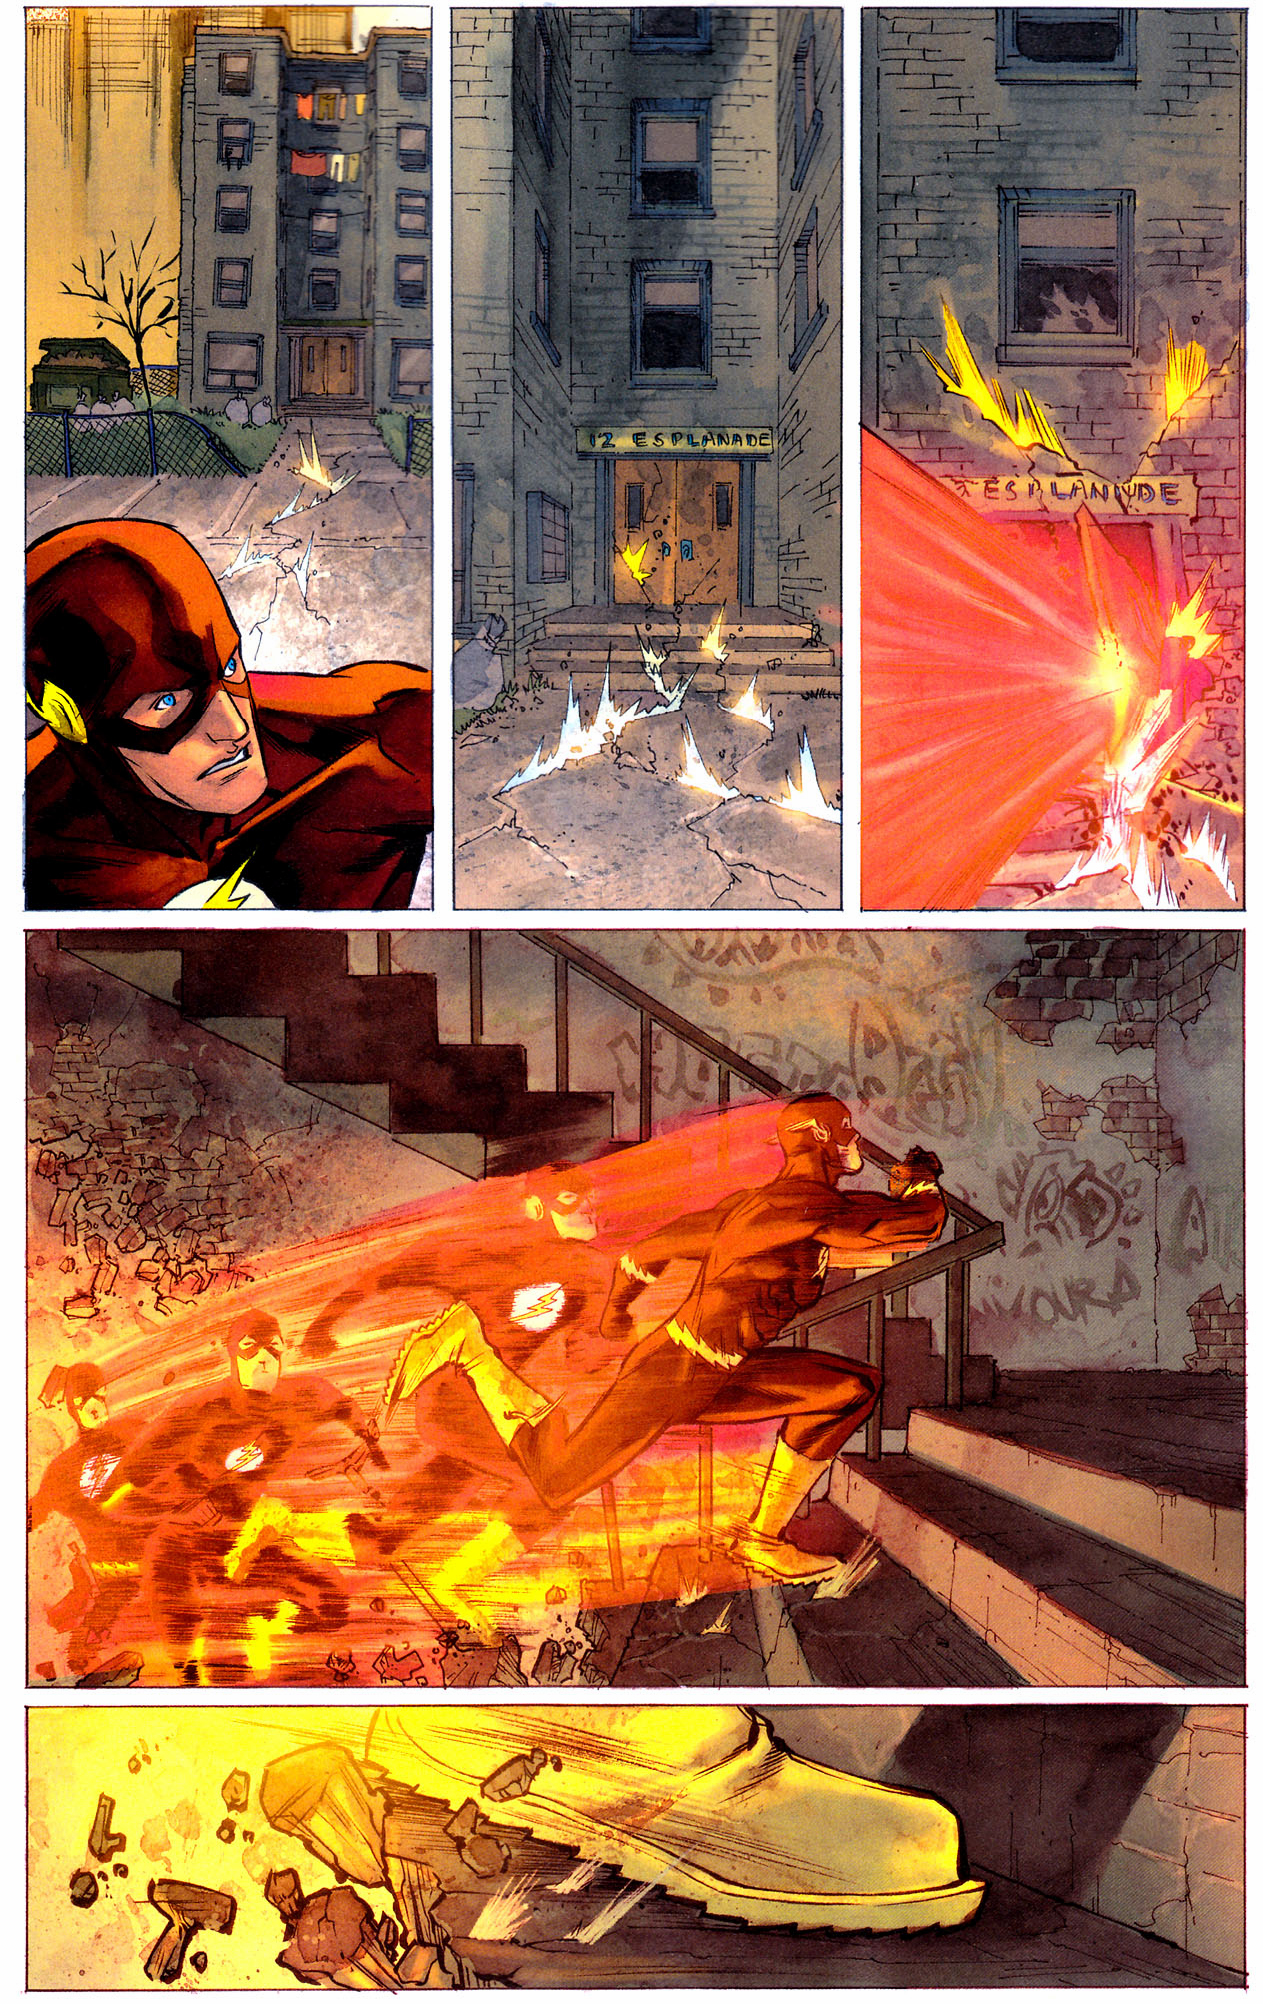 the flash rebuilds a building from scratch